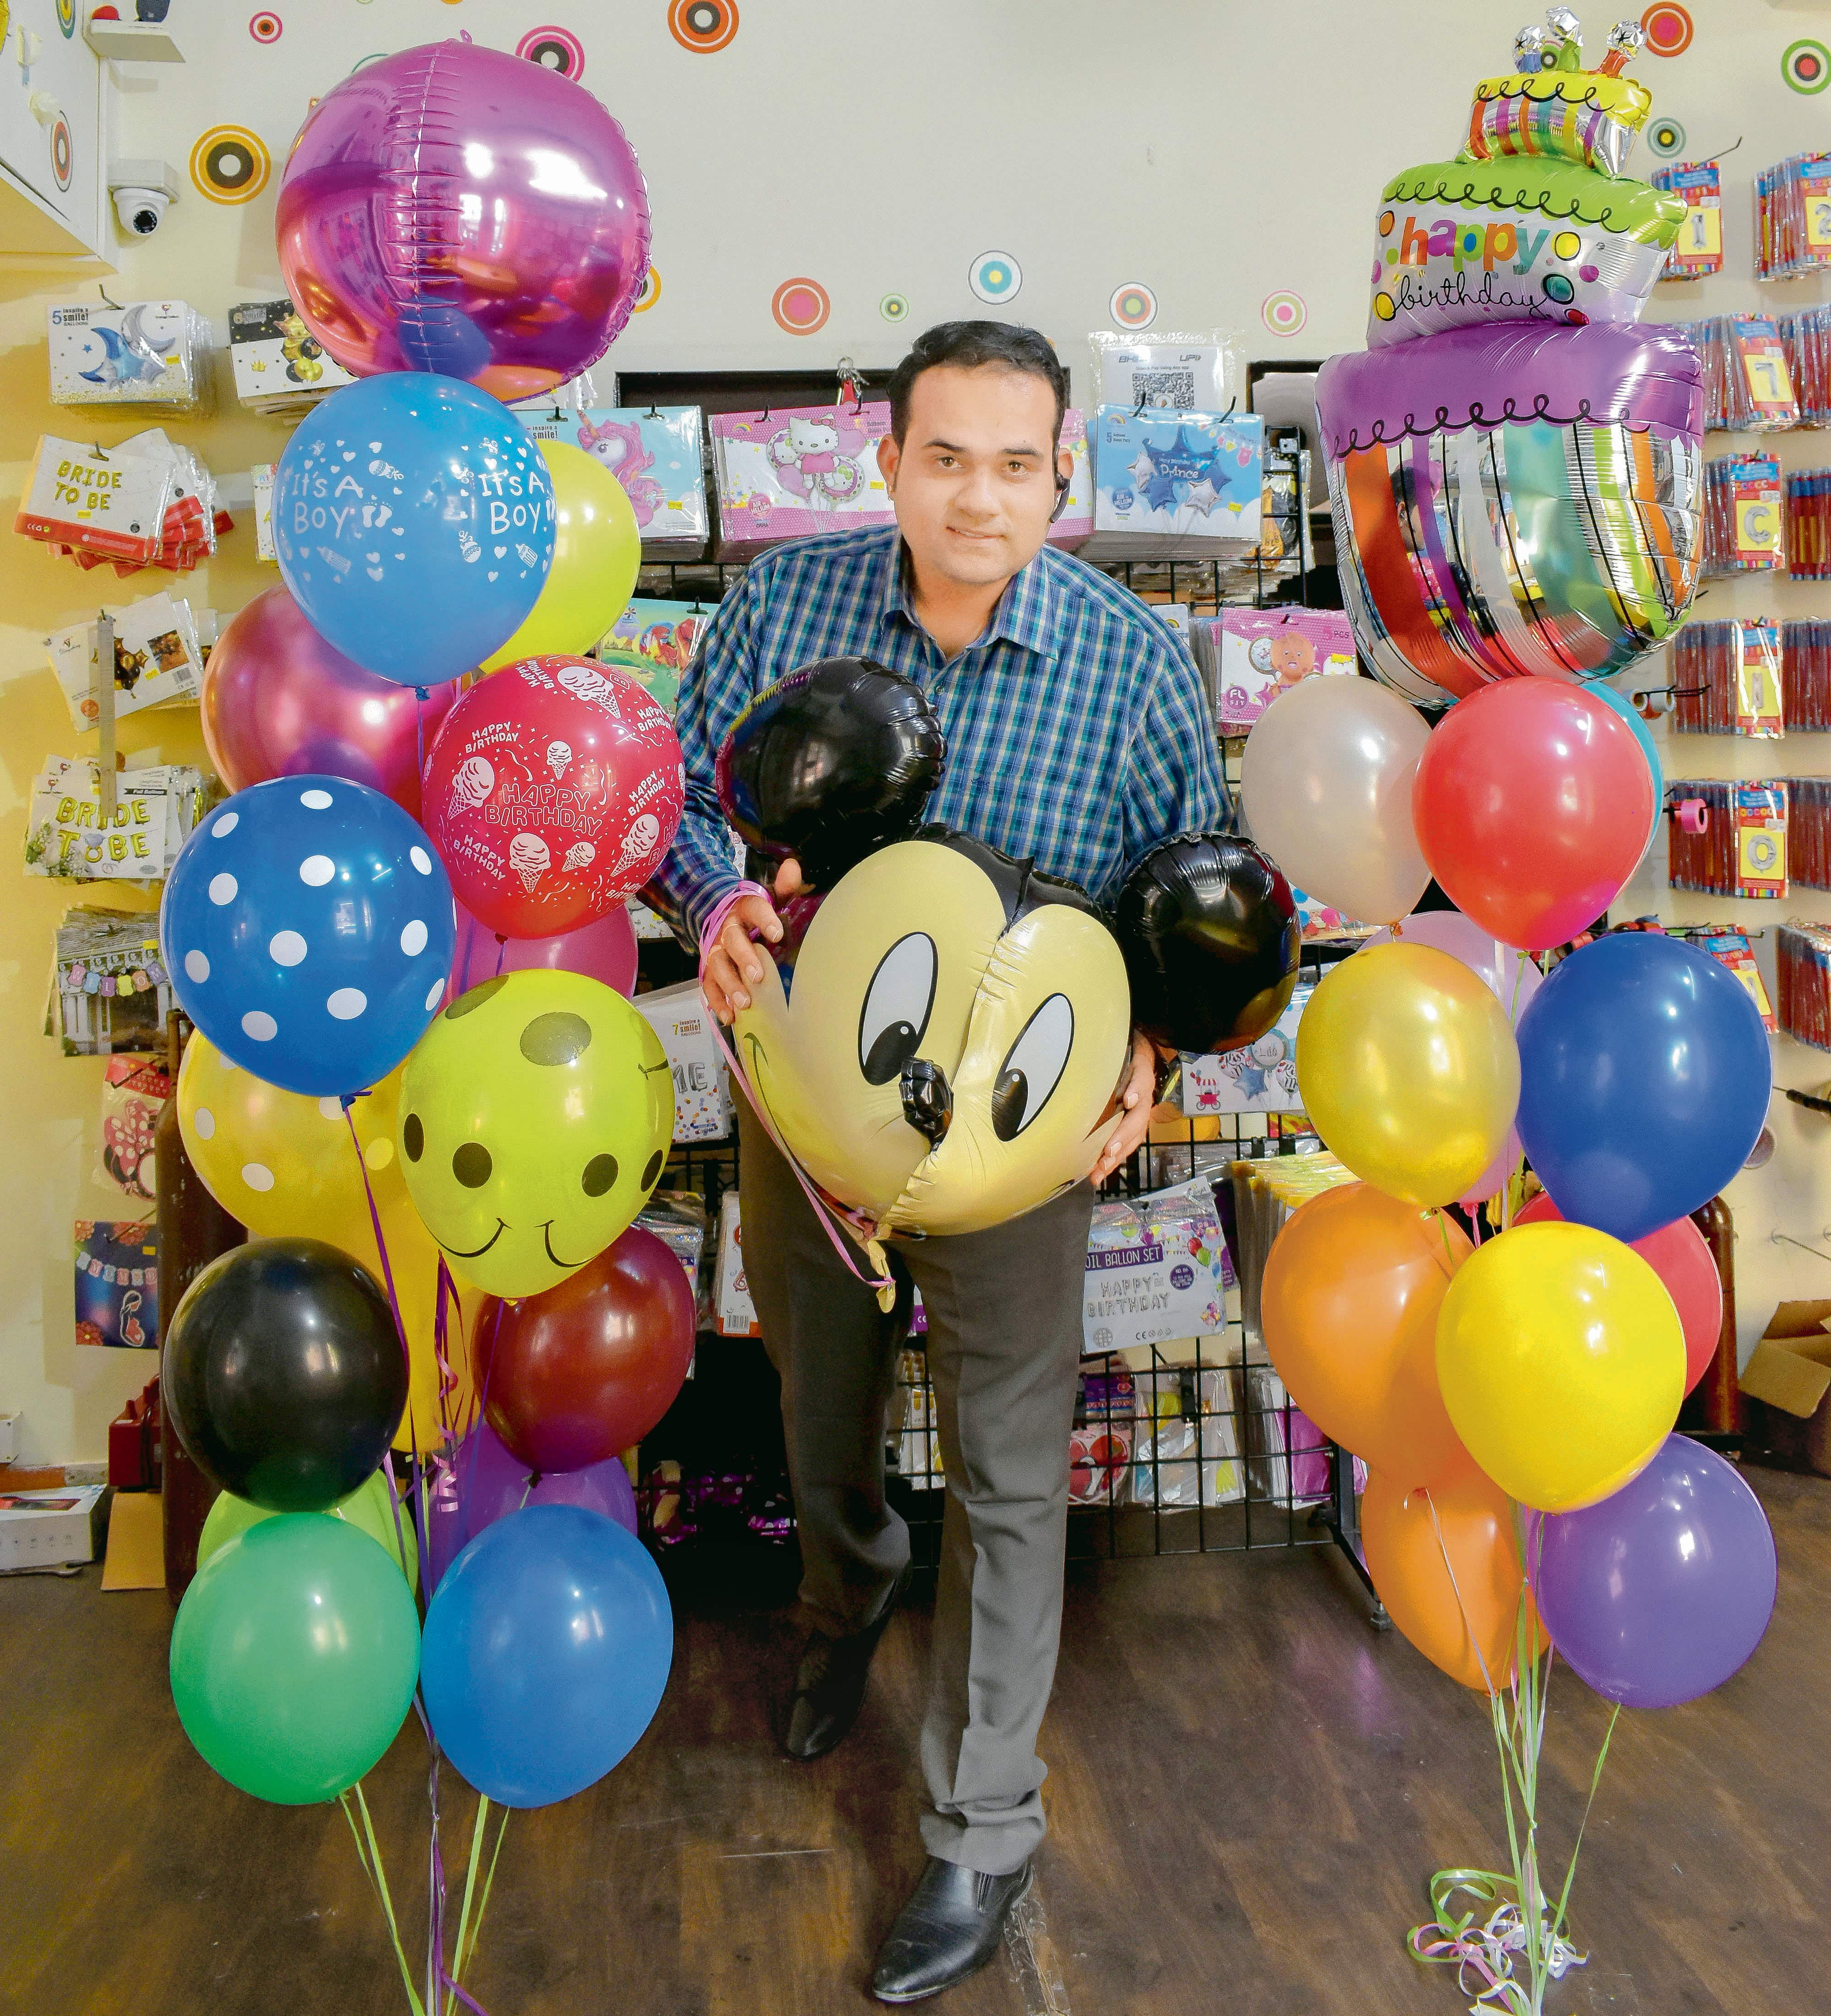 Book My Balloons' founder and chief happiness officer Ashwin Kannan.